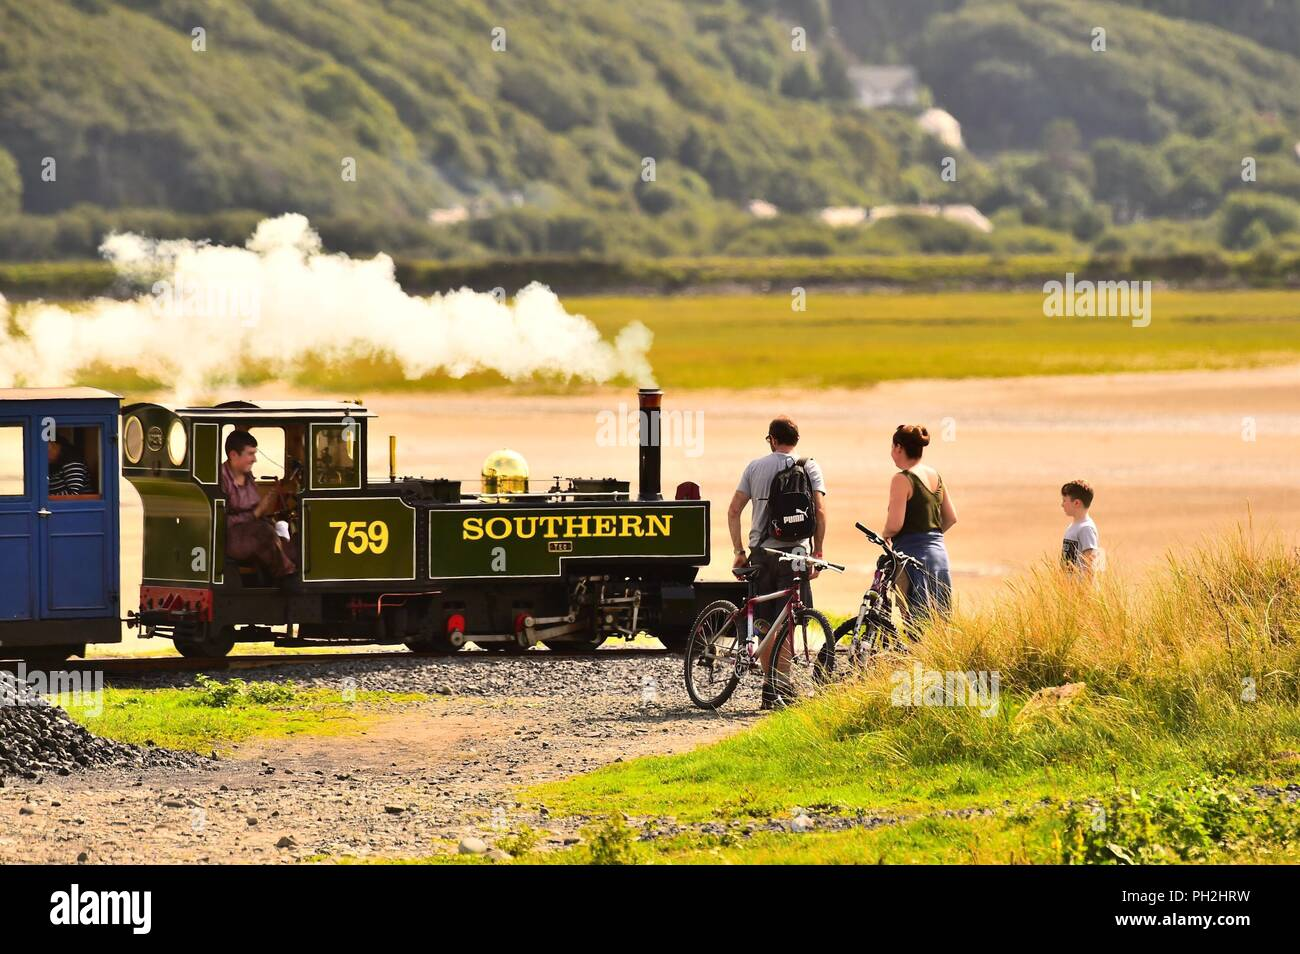 Barmouth Wales UK, Thursday 30 August 2018  UK Weather: people  in Barmouth, Snowdonia, North Wales, enjoying a warm and sunny afternoon watching the miniature steam train pass by, as the long school summer holidays come to an end   photo © Keith Morris / Alamy Live News - Stock Image